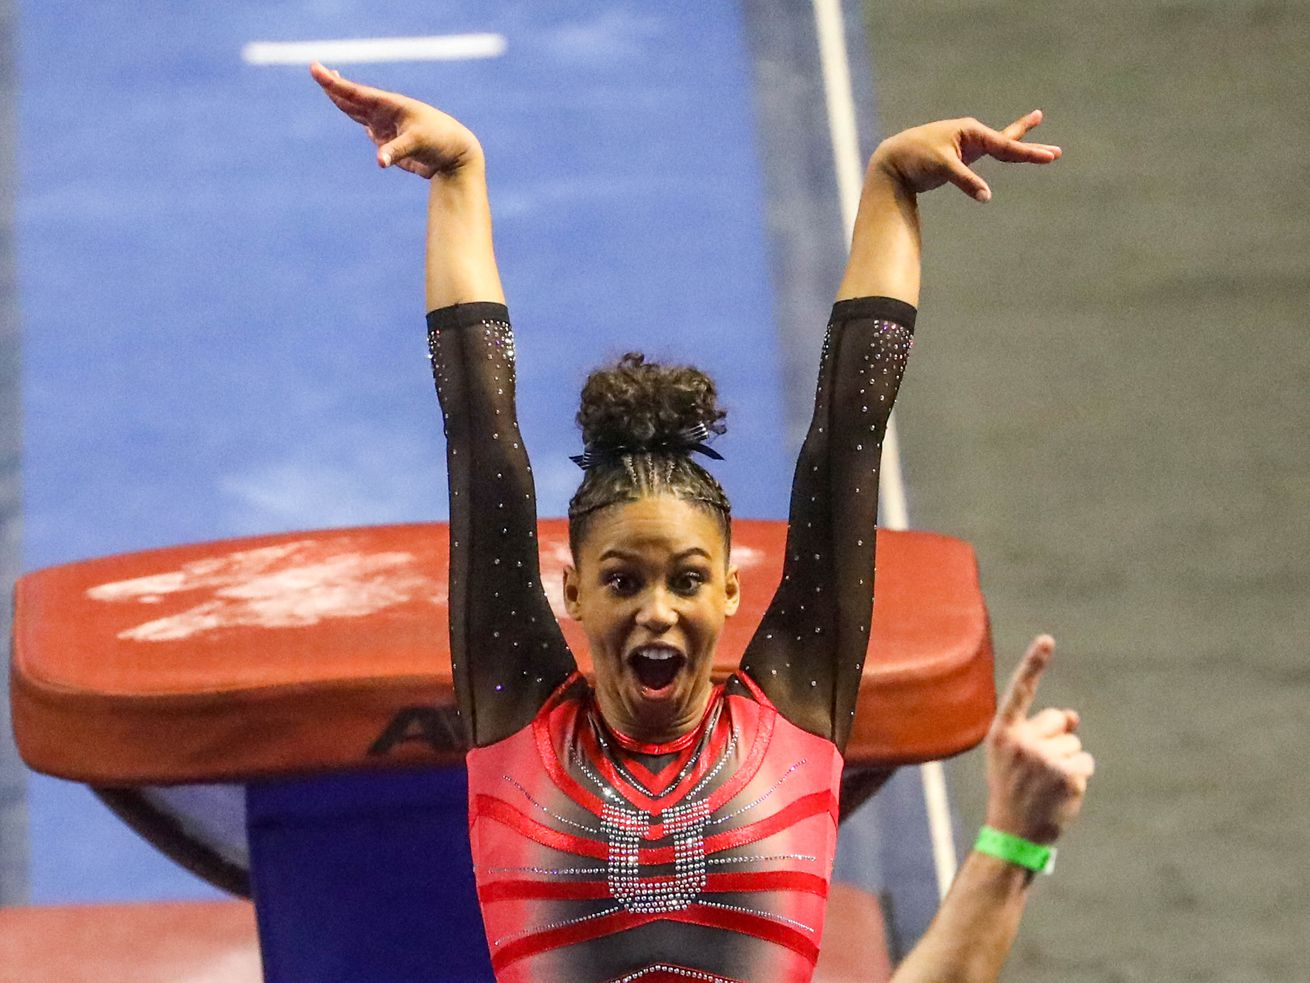 Utah Utes' Jaedyn Rucker reacts after her vault during the NCAA Regional Final Round at the Maverik Center on Saturday, April 3, 2021. The Utes are moving on to the next round.